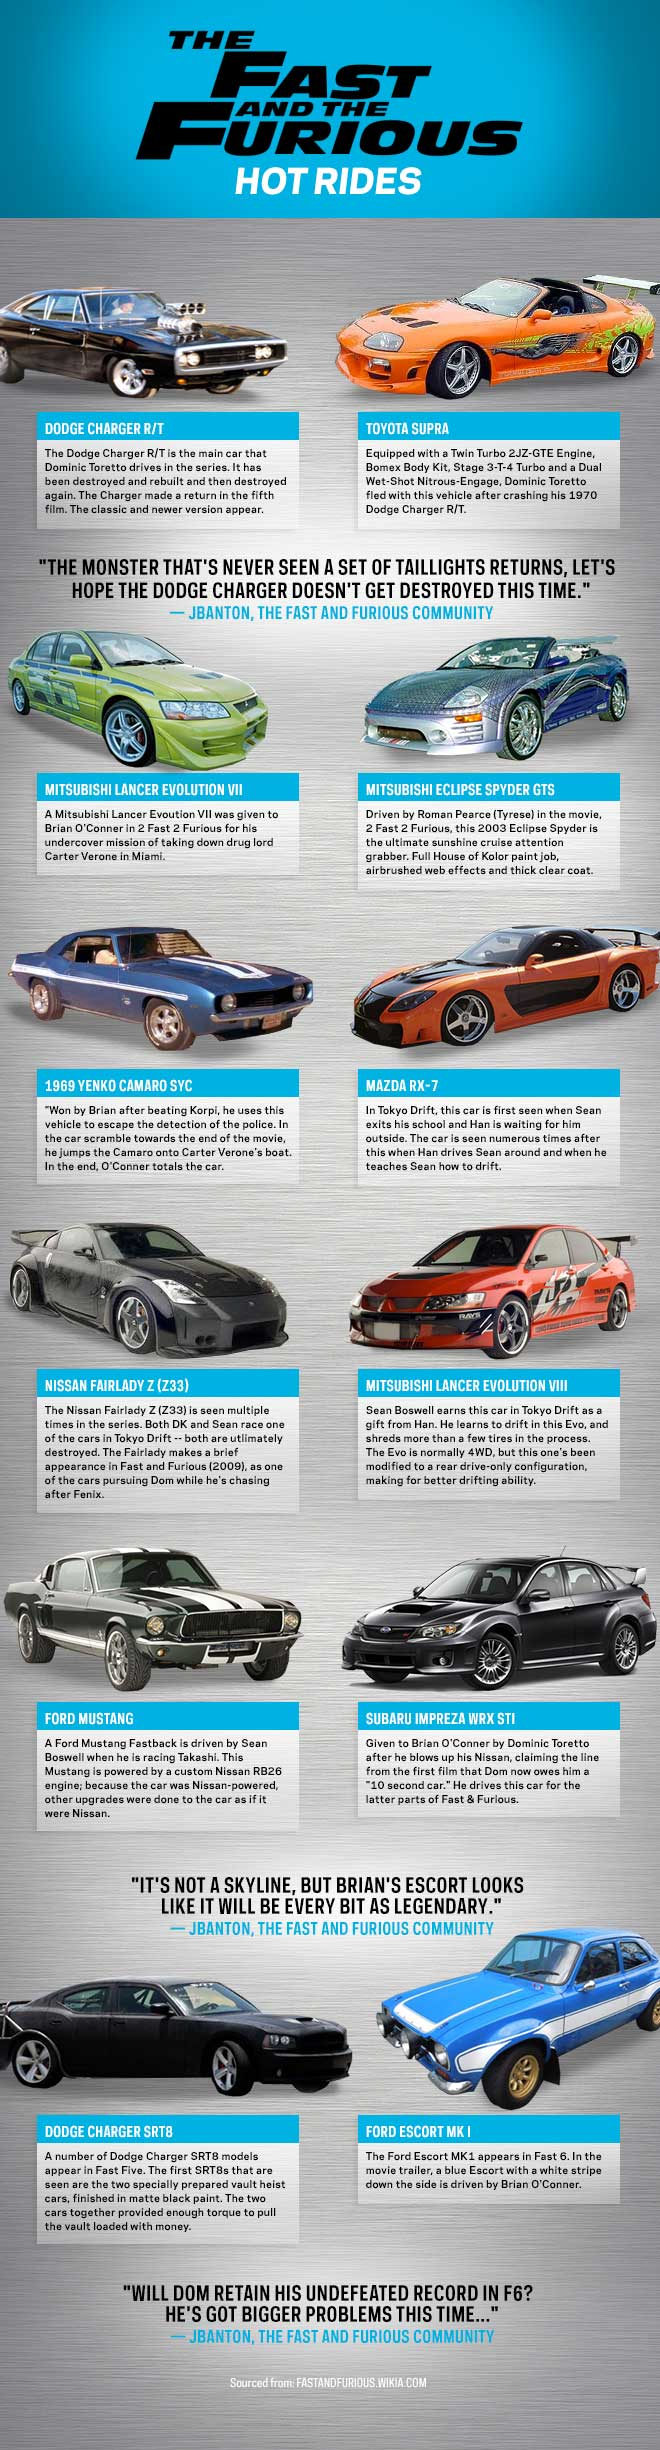 FastFurious CharacterTree R1-1